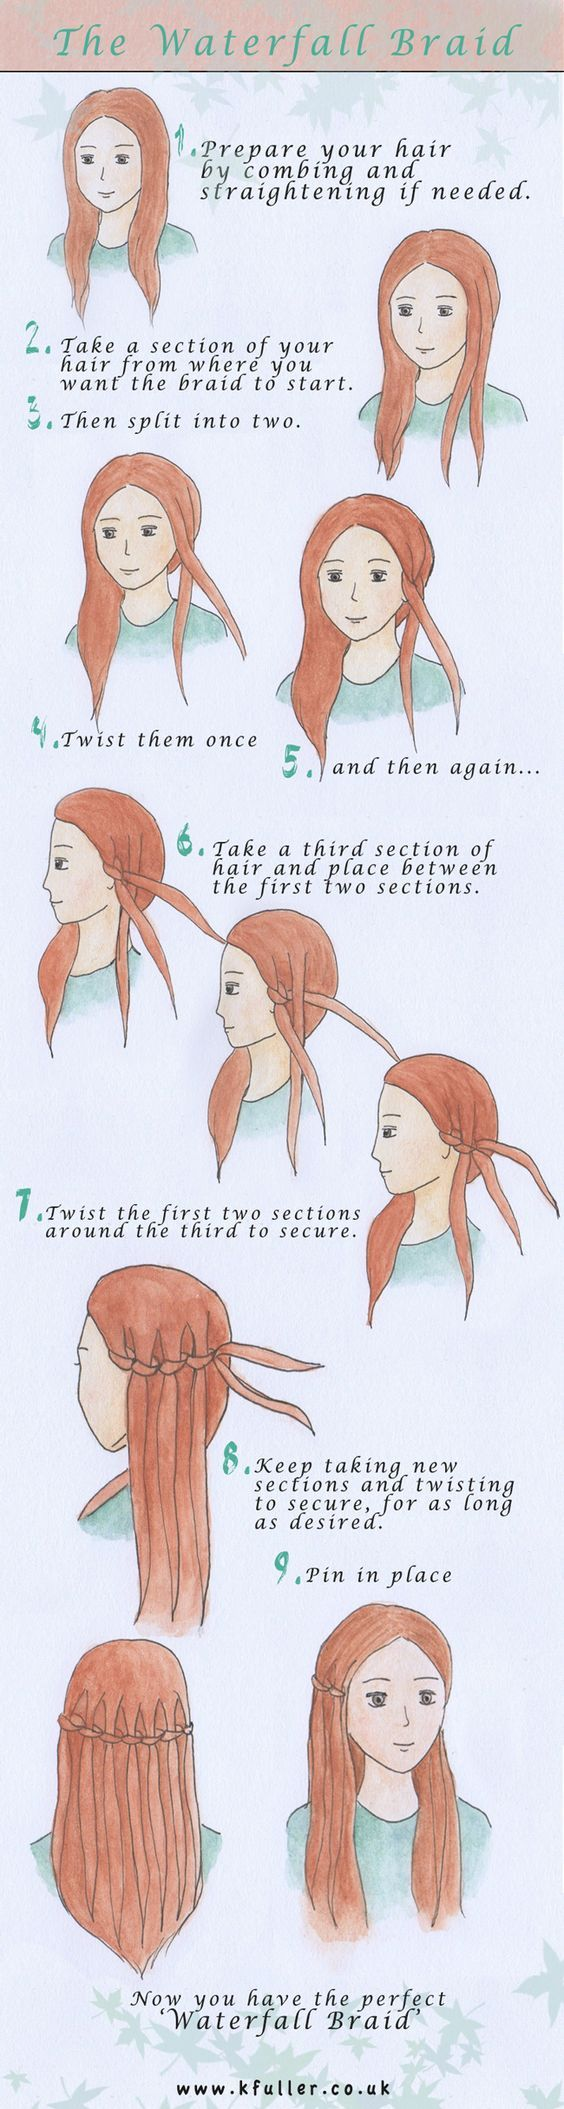 really easy directions for a waterfall braid. Been looking for something like this this!: